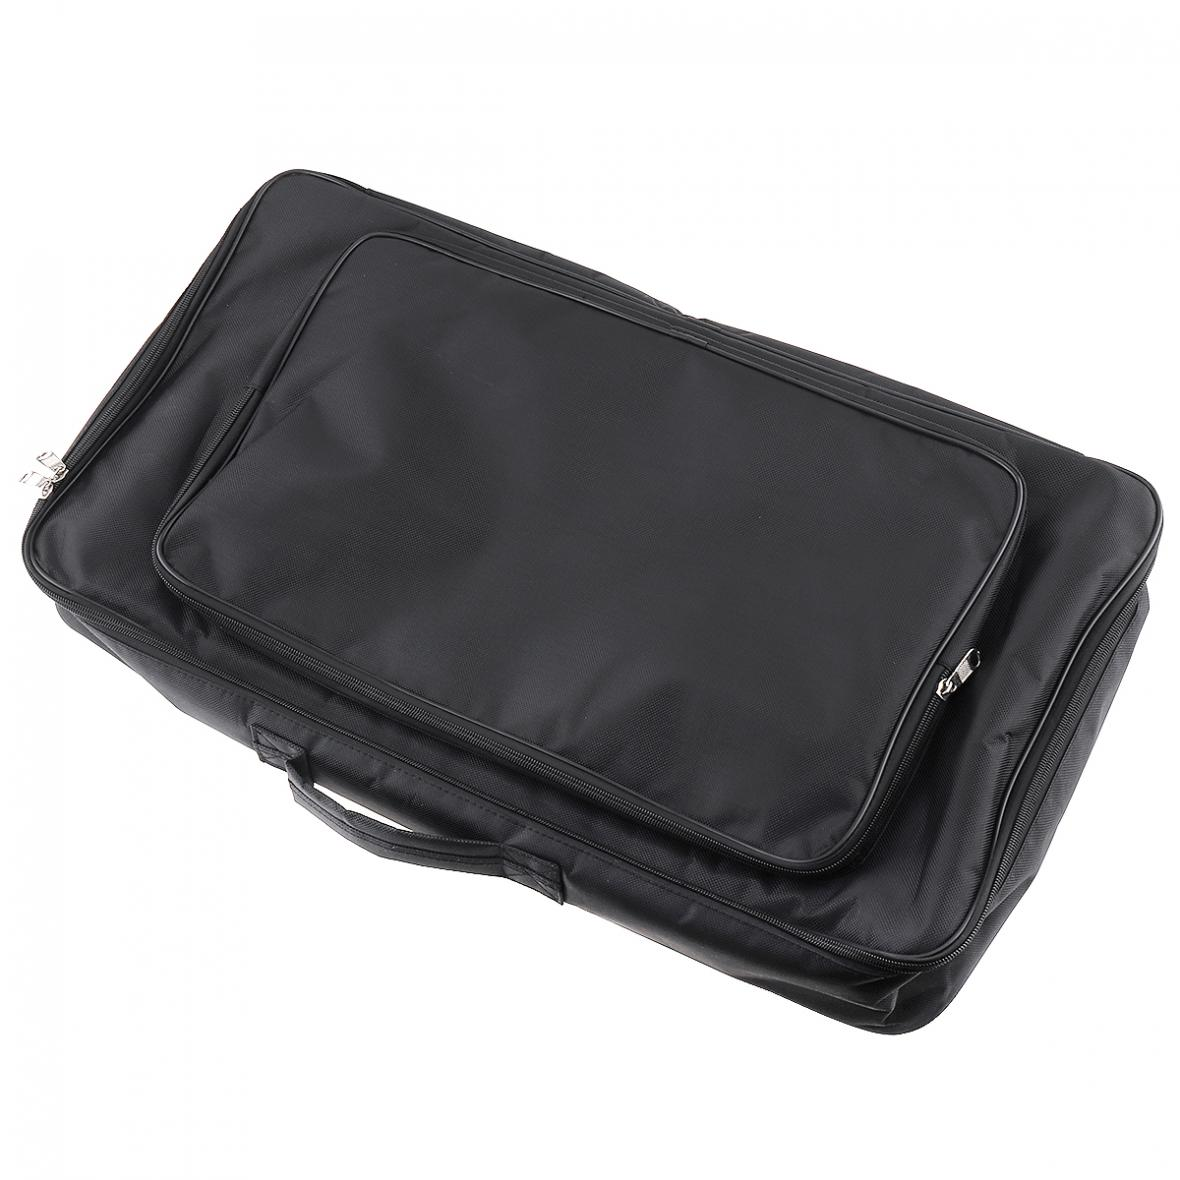 Image 4 - 60*33*10cm Black Universal Portable Guitar Effects Pedal Board Gig Bag Soft Case Big Style  DIY Guitar Pedalboard-in Guitar Parts & Accessories from Sports & Entertainment